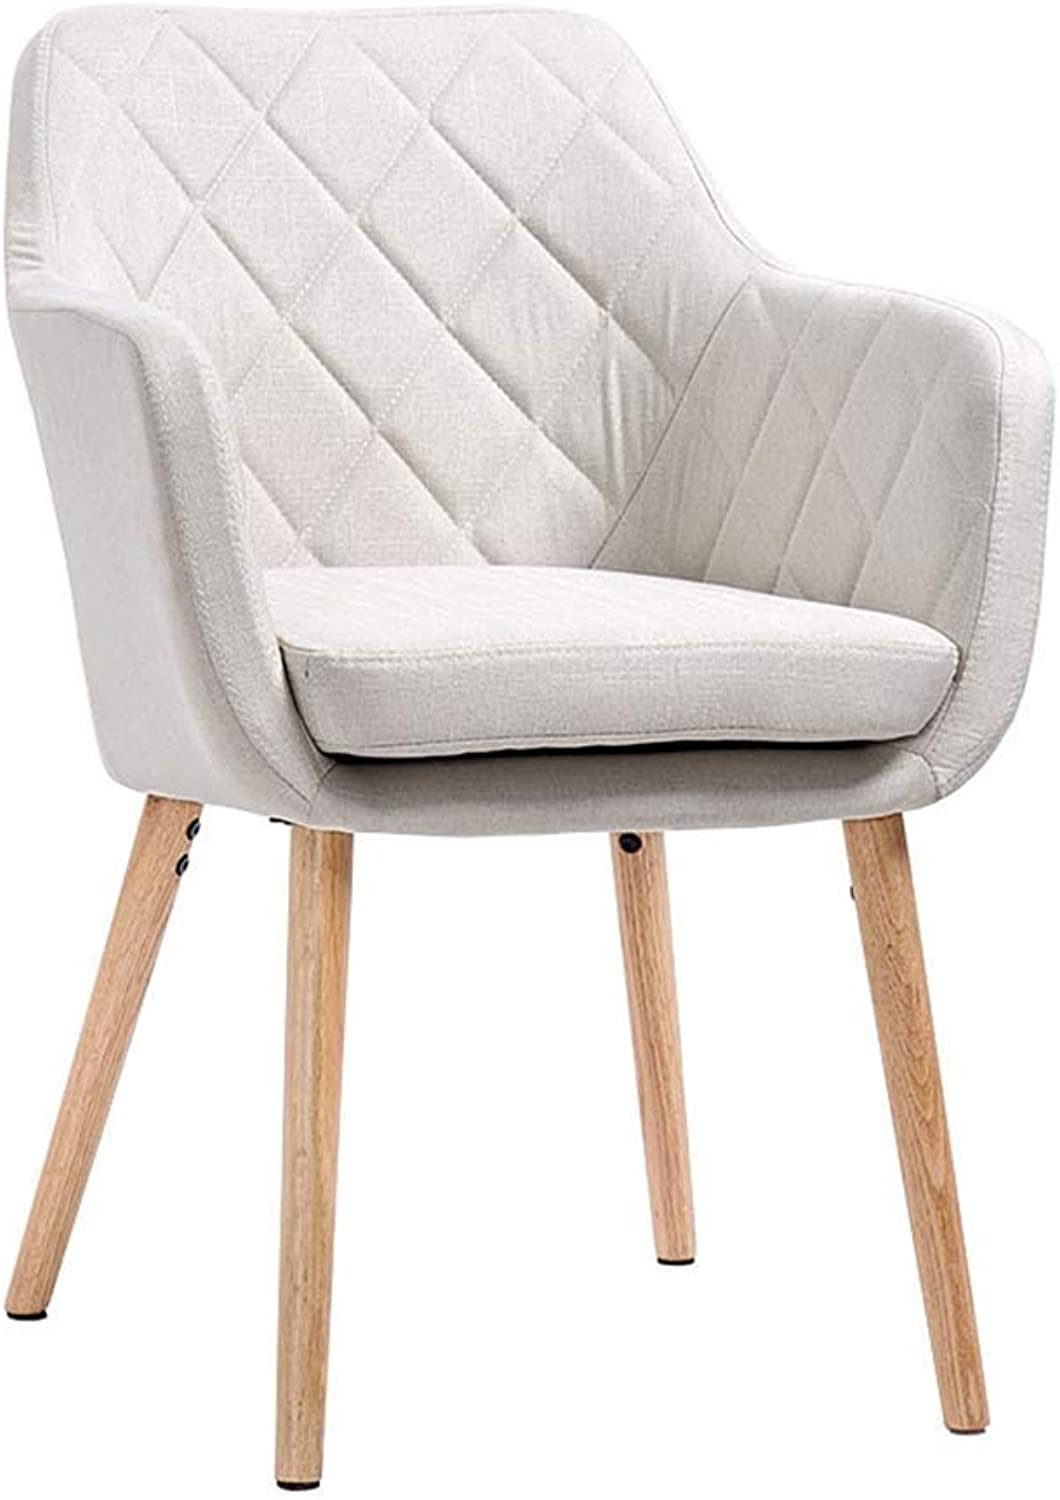 Nordic Work Chair, Simple Style Chair Coffee Lounge Chair Padded Cushion Cafe Lounge Chair with Armrest Wear Resistant Dirt Durable (color   White)